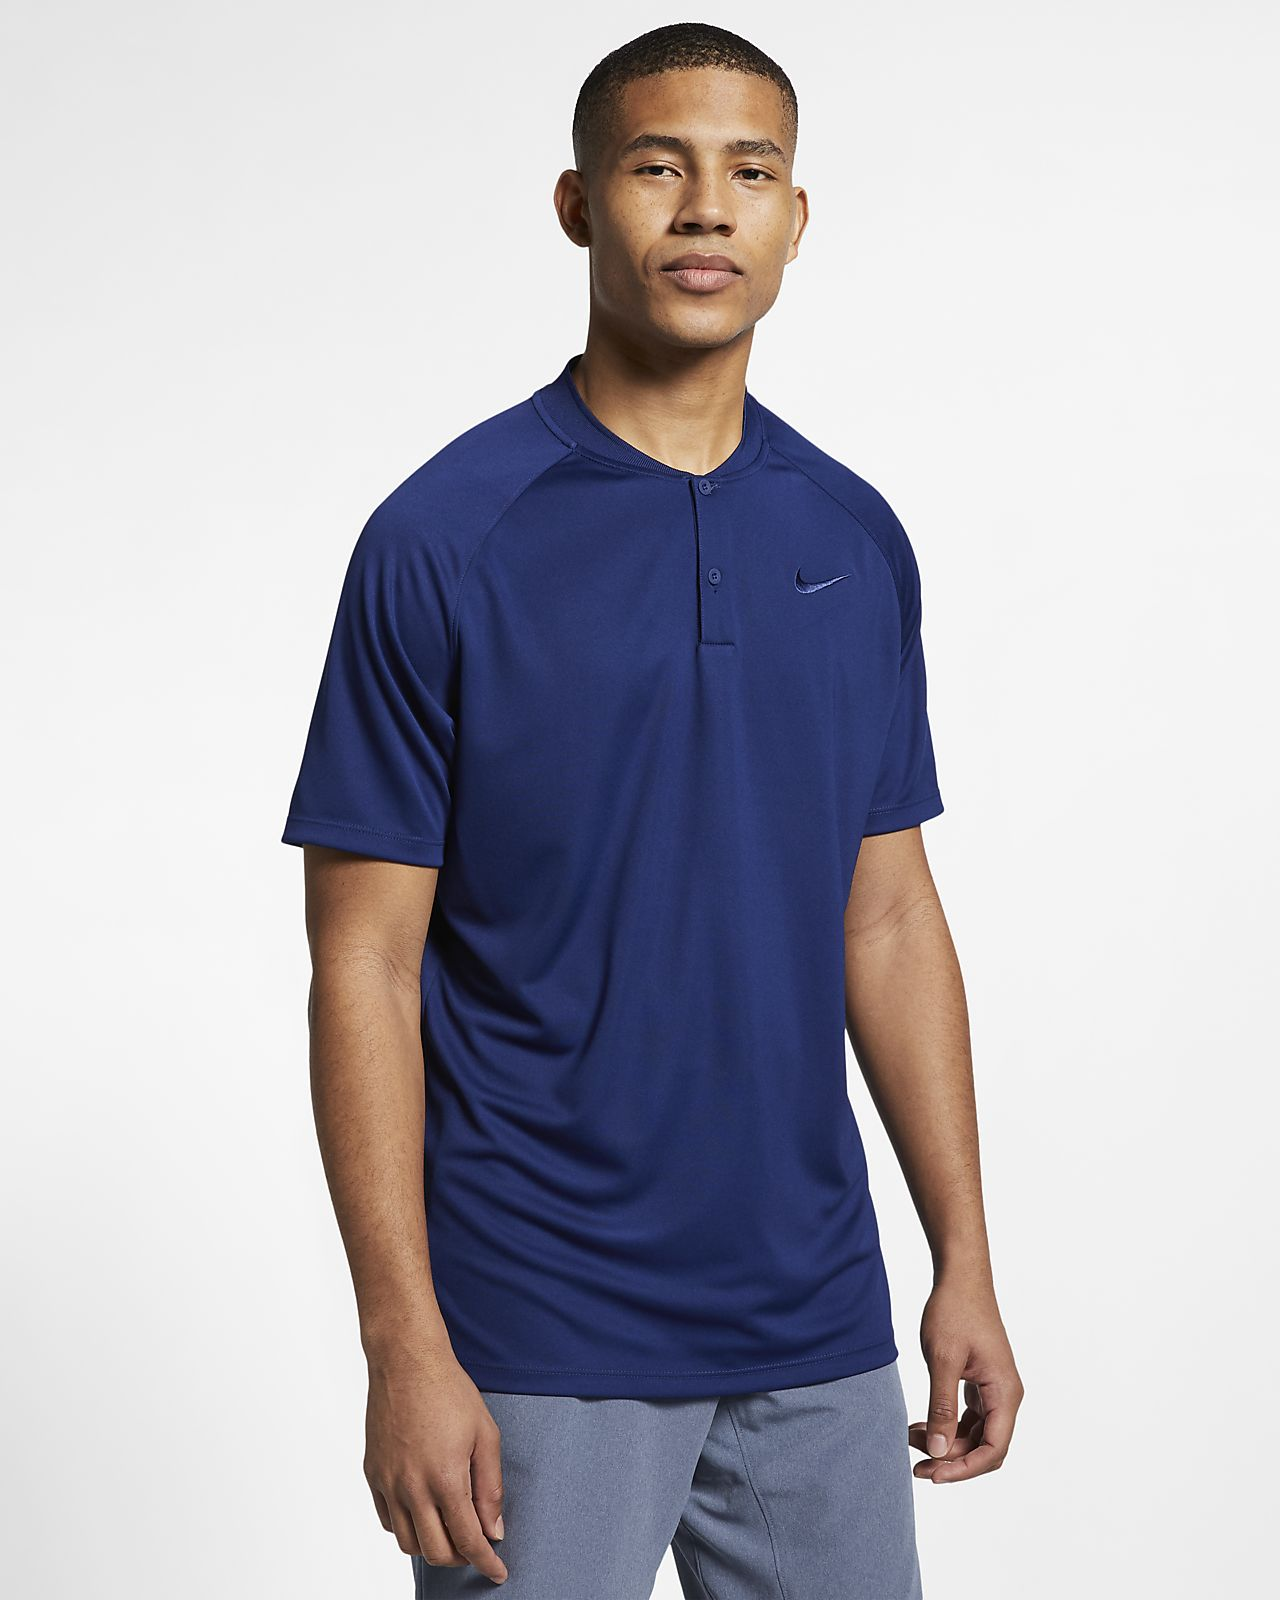 Nike Dri Fit Momentum Mens Standard Fit Golf Polo Nike